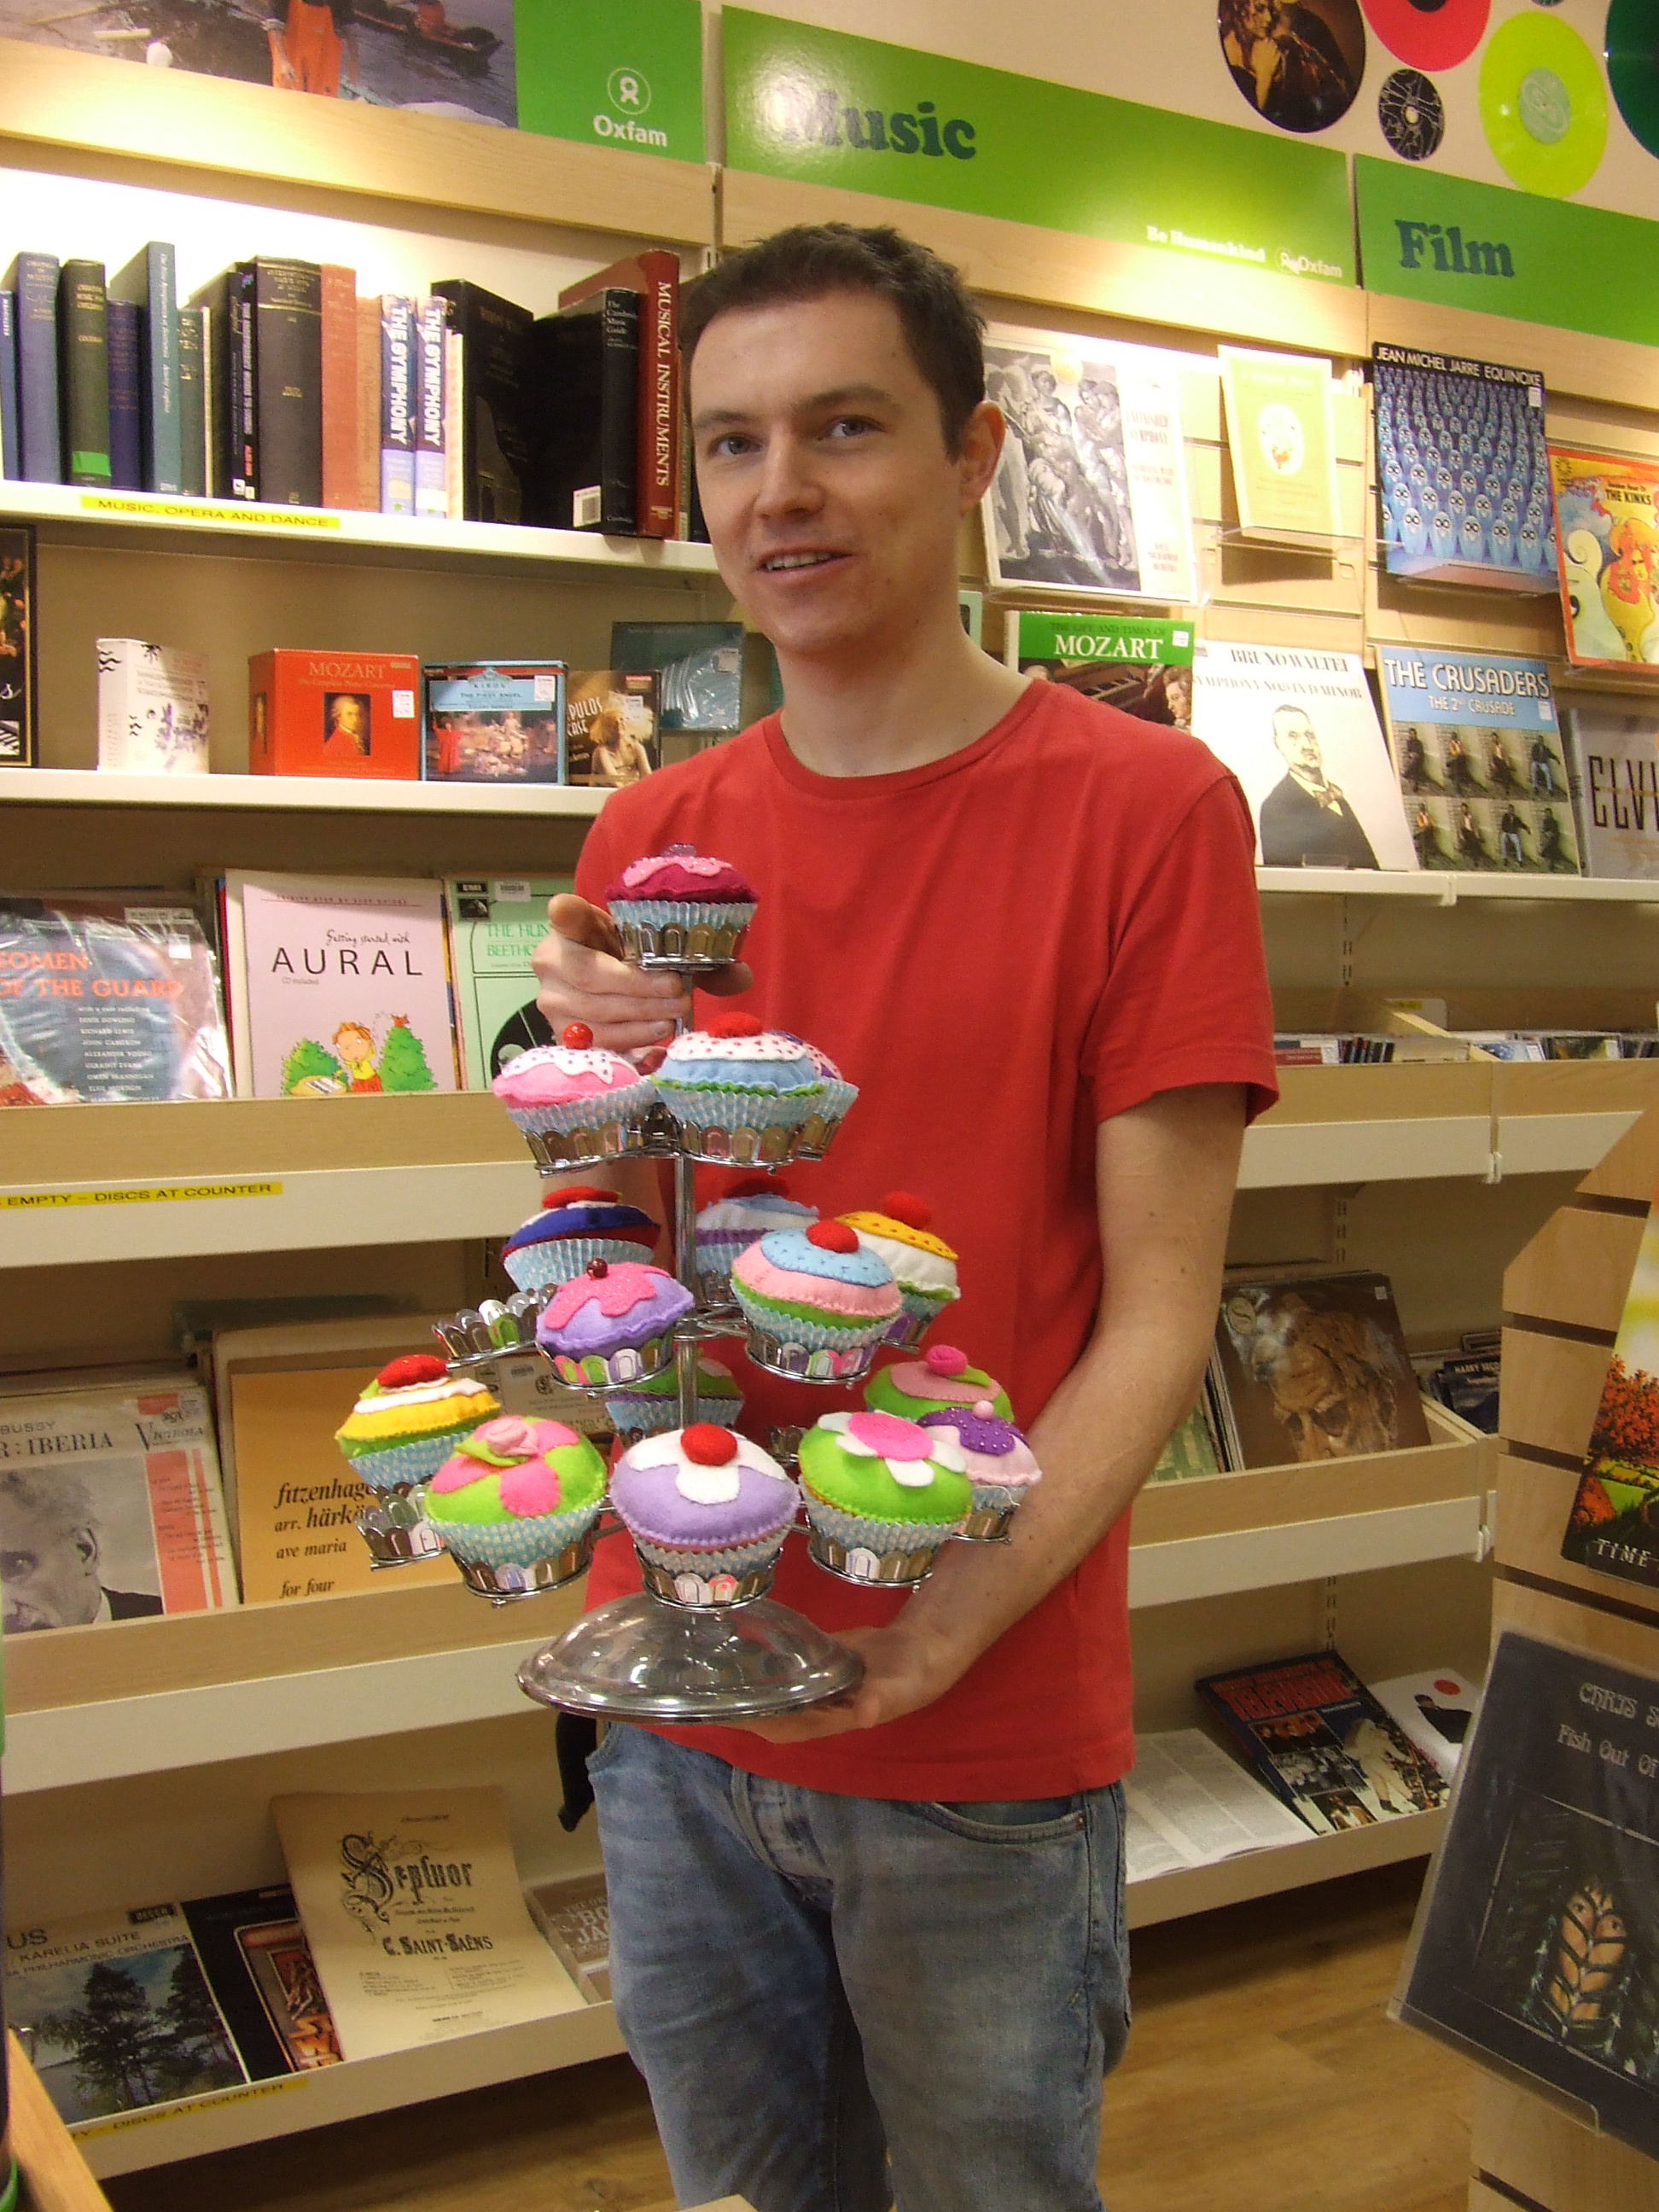 Chris Hancox with some of the cake creations